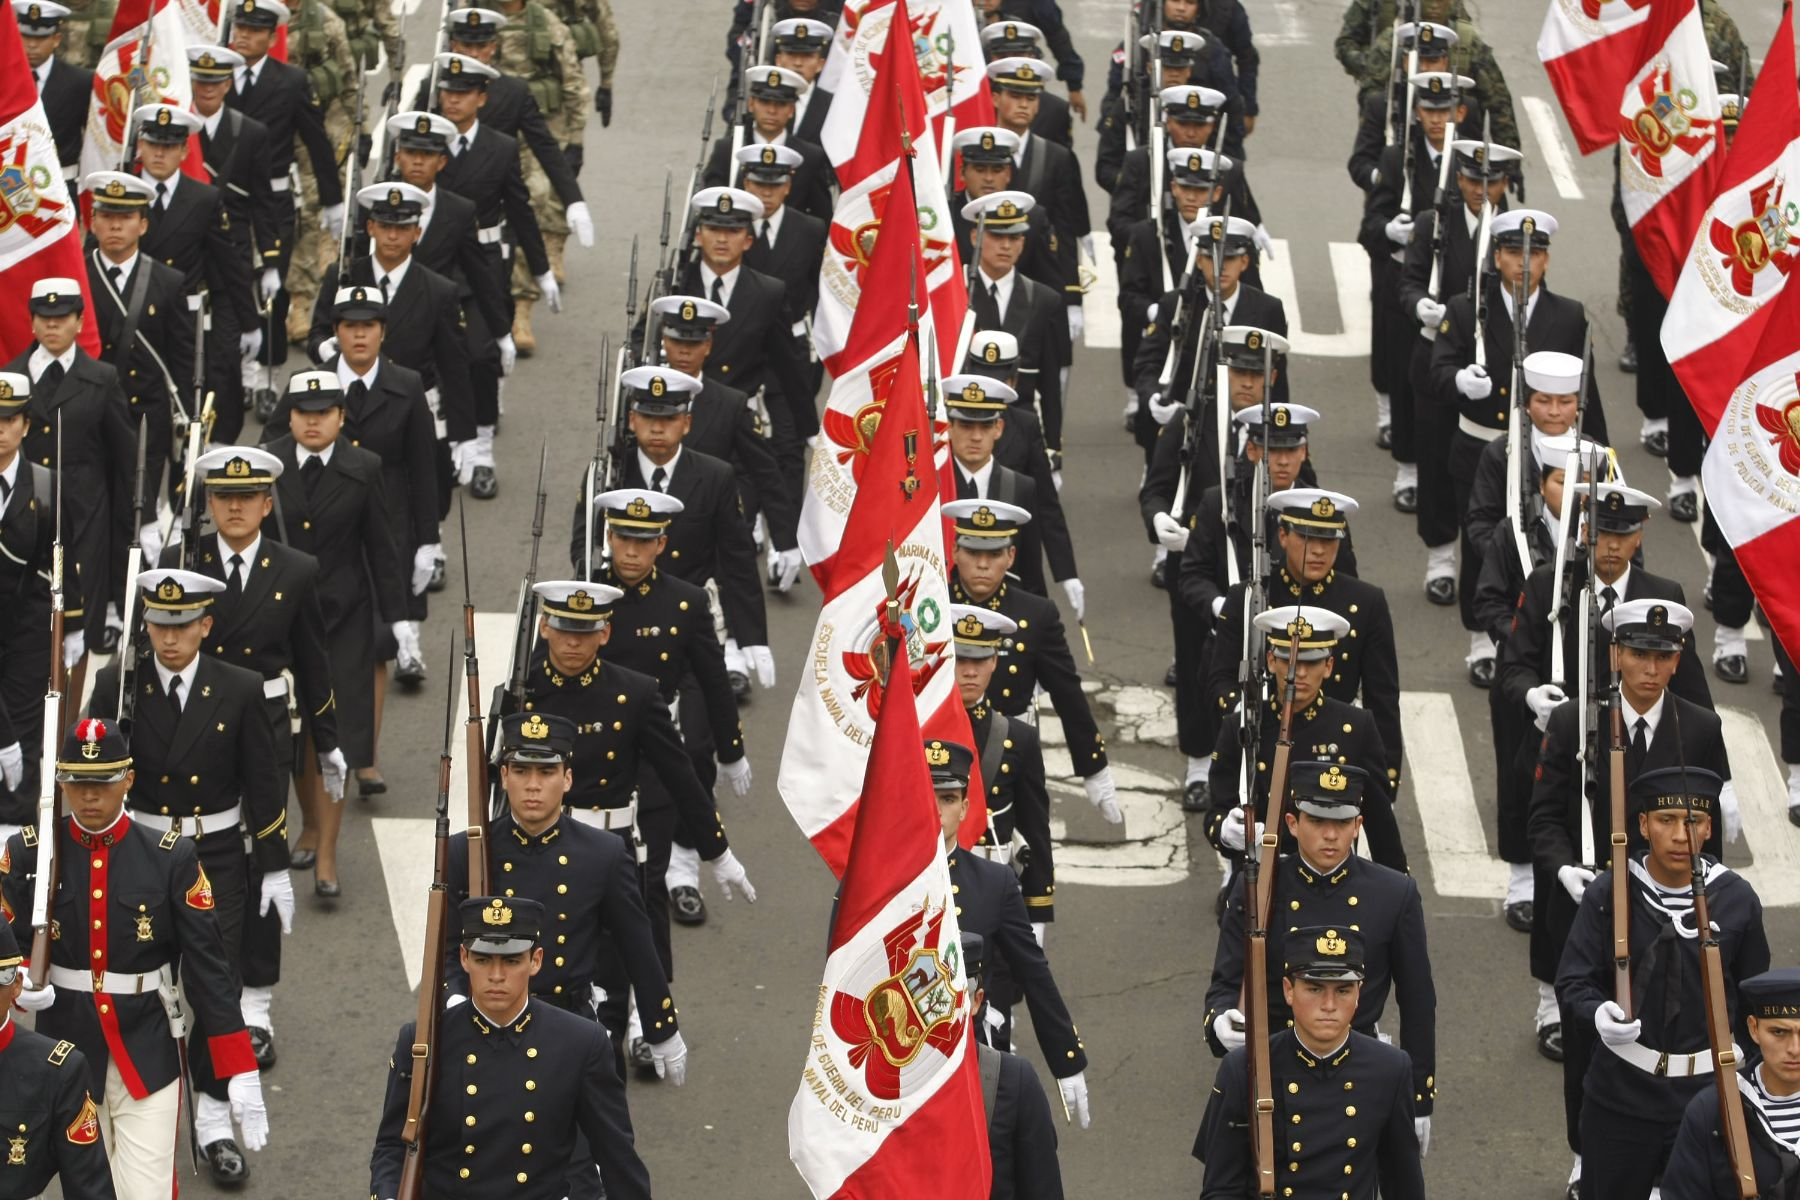 Great Military Parade celebrates the anniversary of Peru